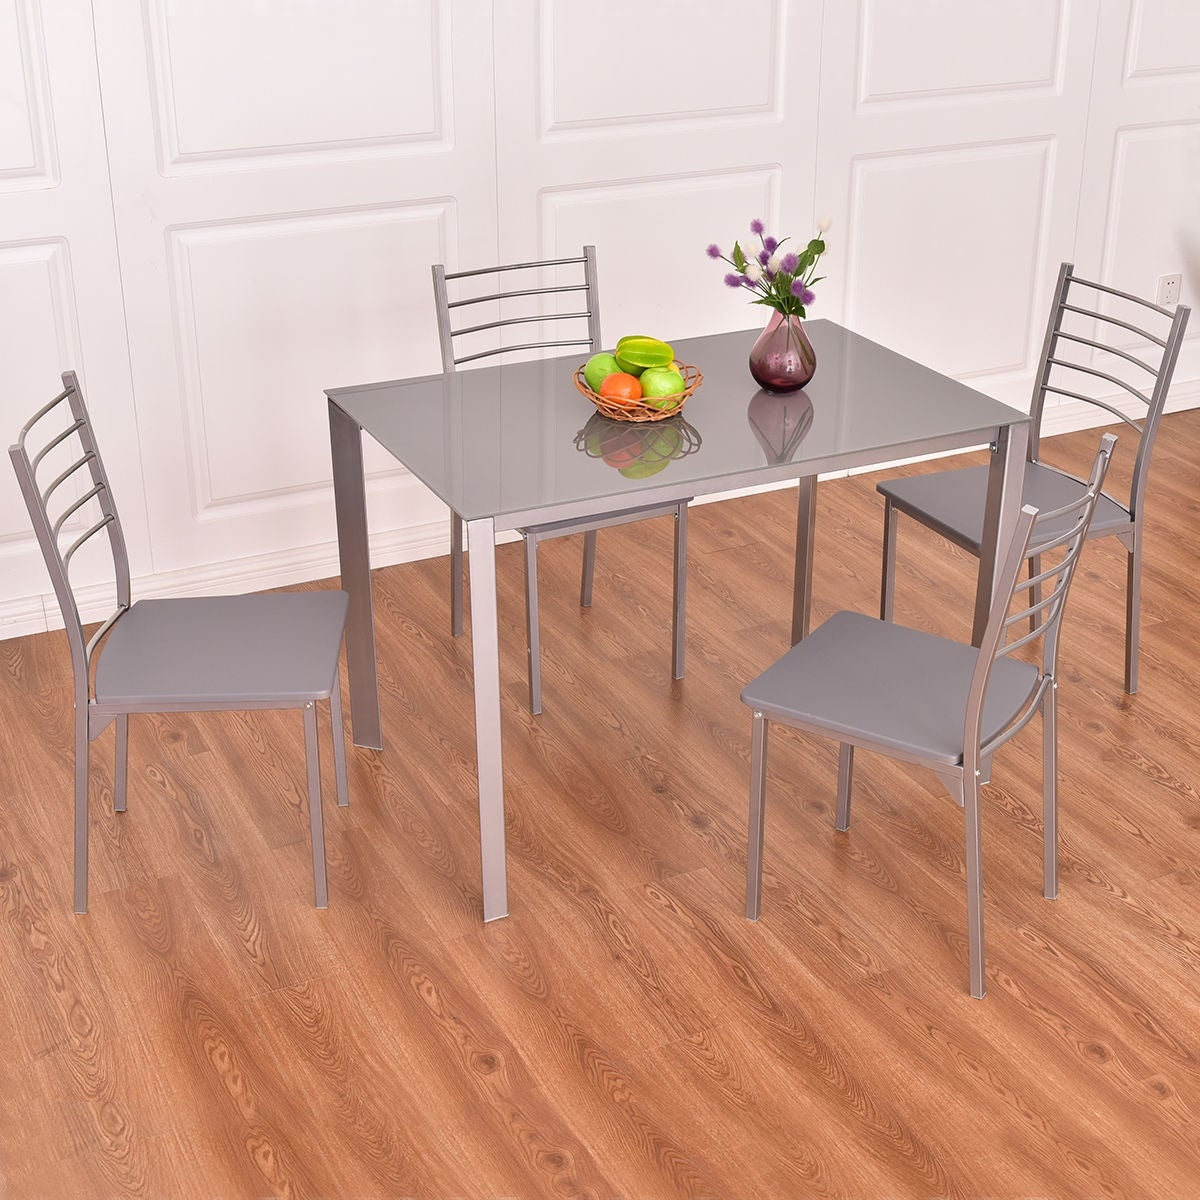 Shop Costway Tempered Glass Table Top 5 PCS Dining Set Kitchen Furniture    Free Shipping Today   Overstock.com   17056588